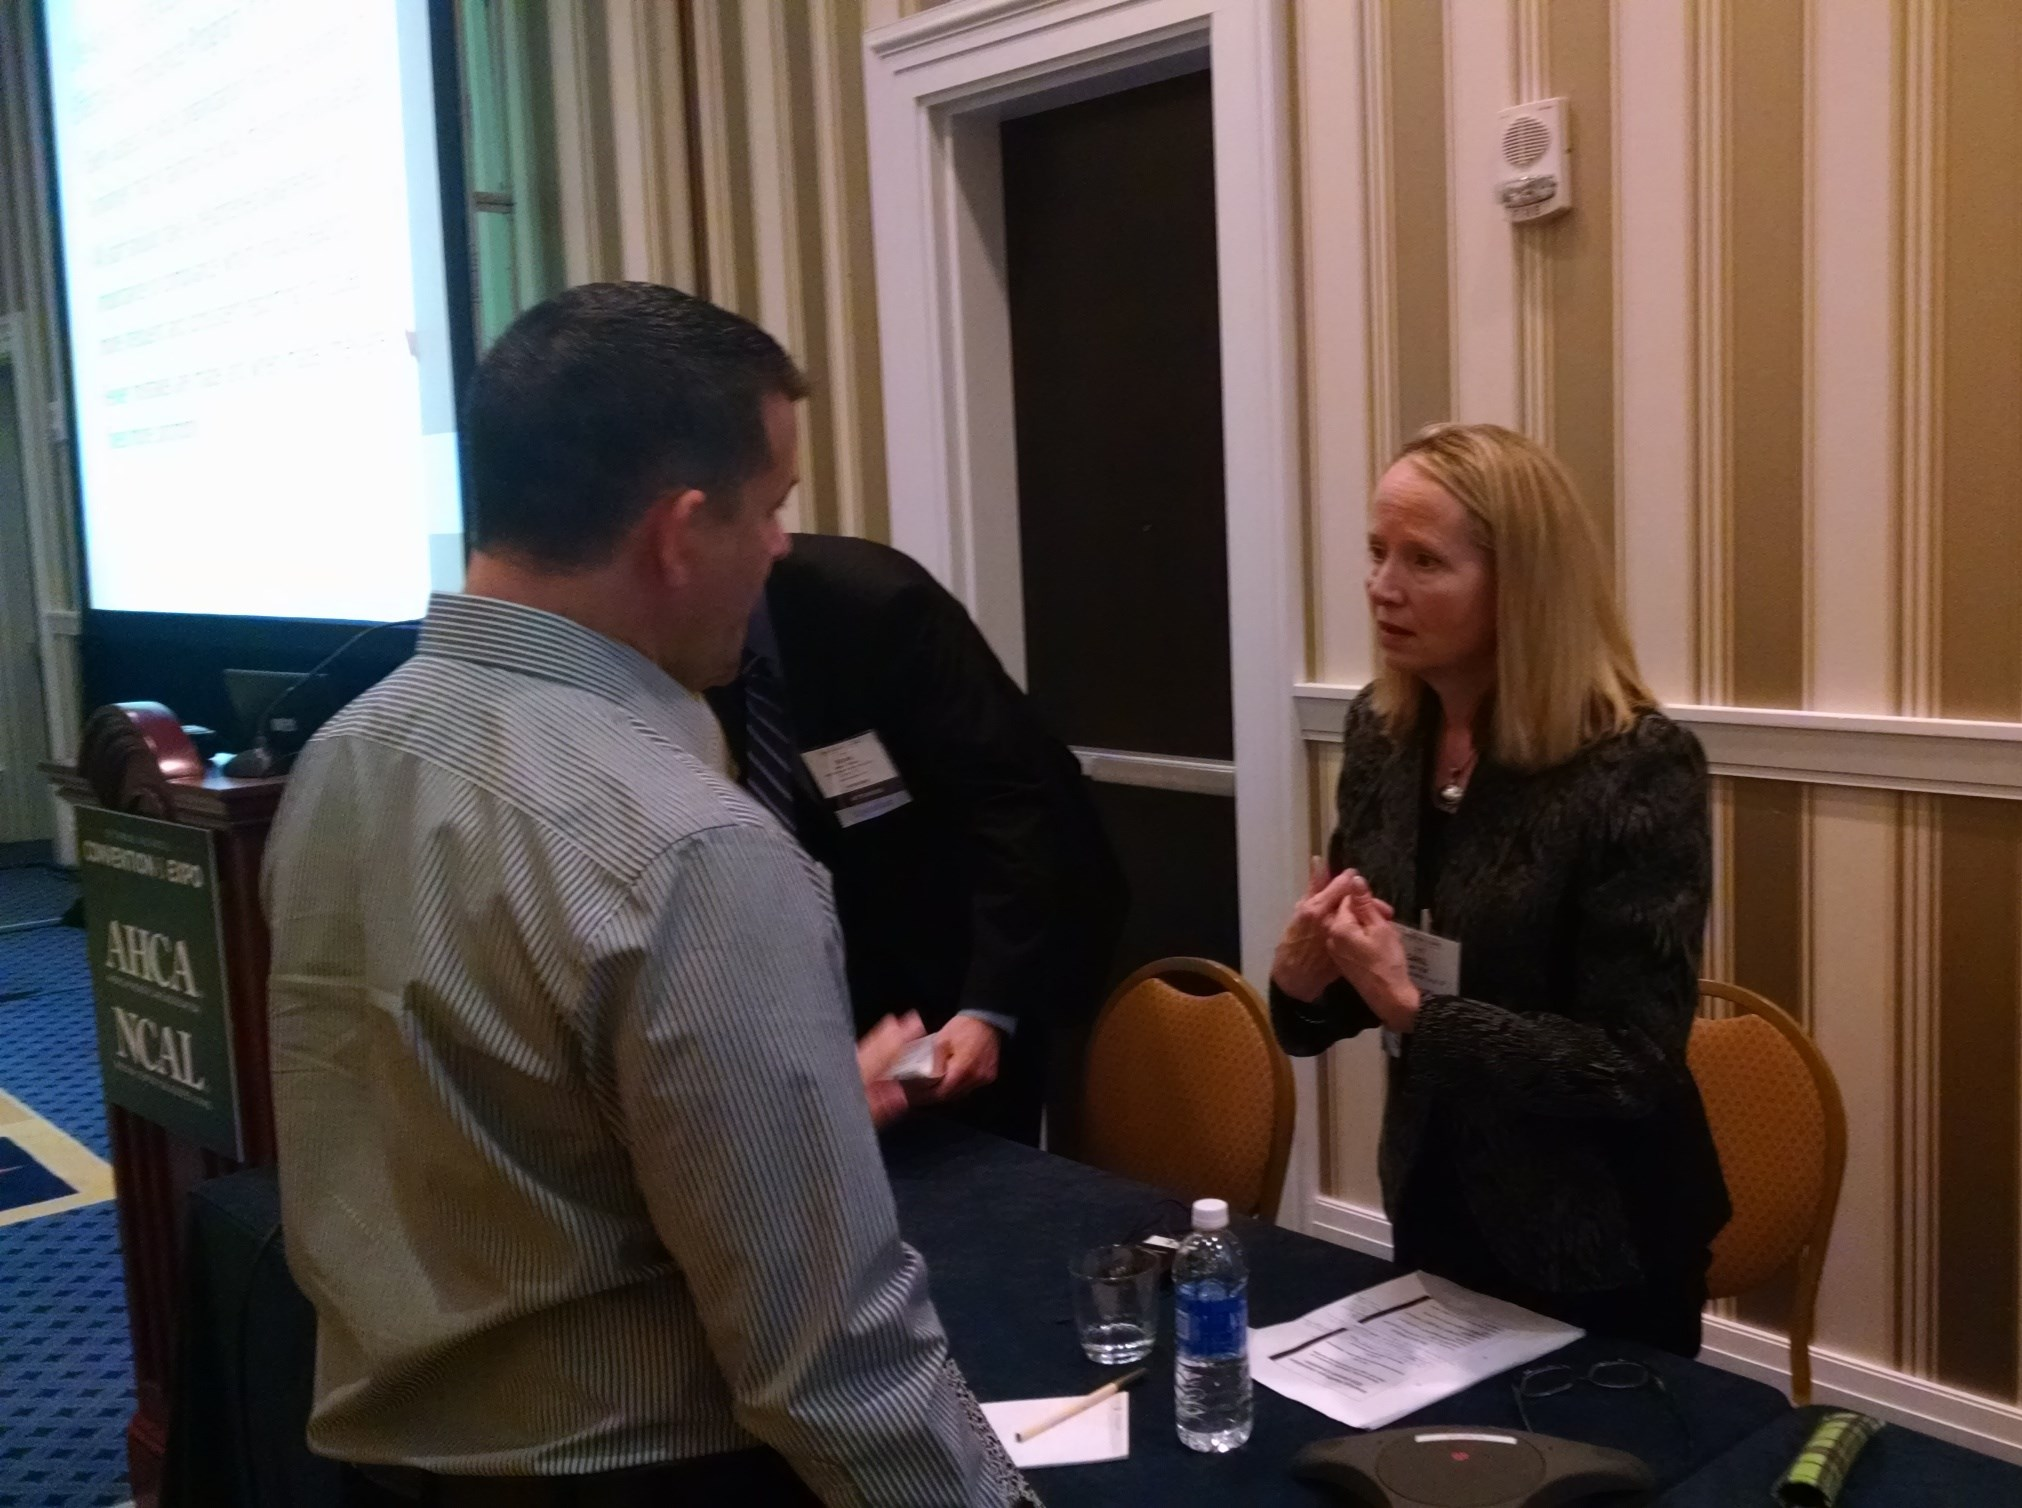 Compliance starts at the top, experts say at AHCA/NCAL convention